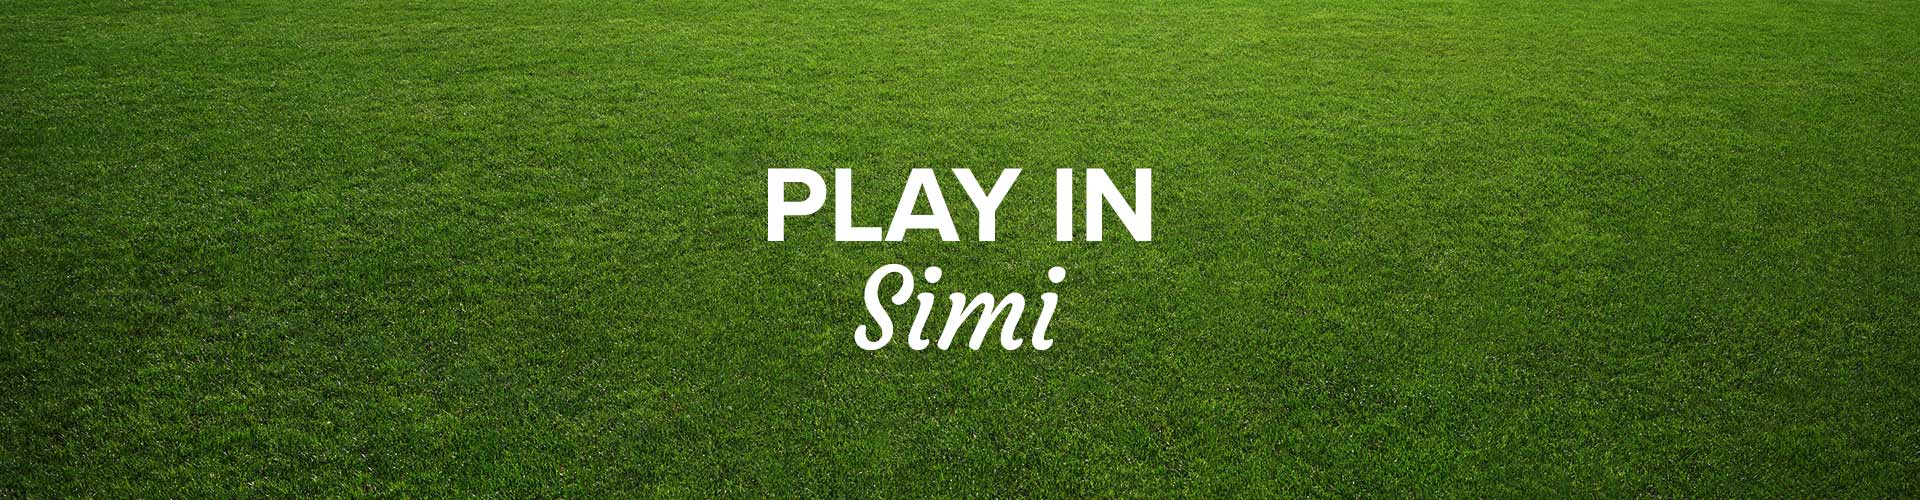 Plan A Sports Tournament - Visit Simi Valley